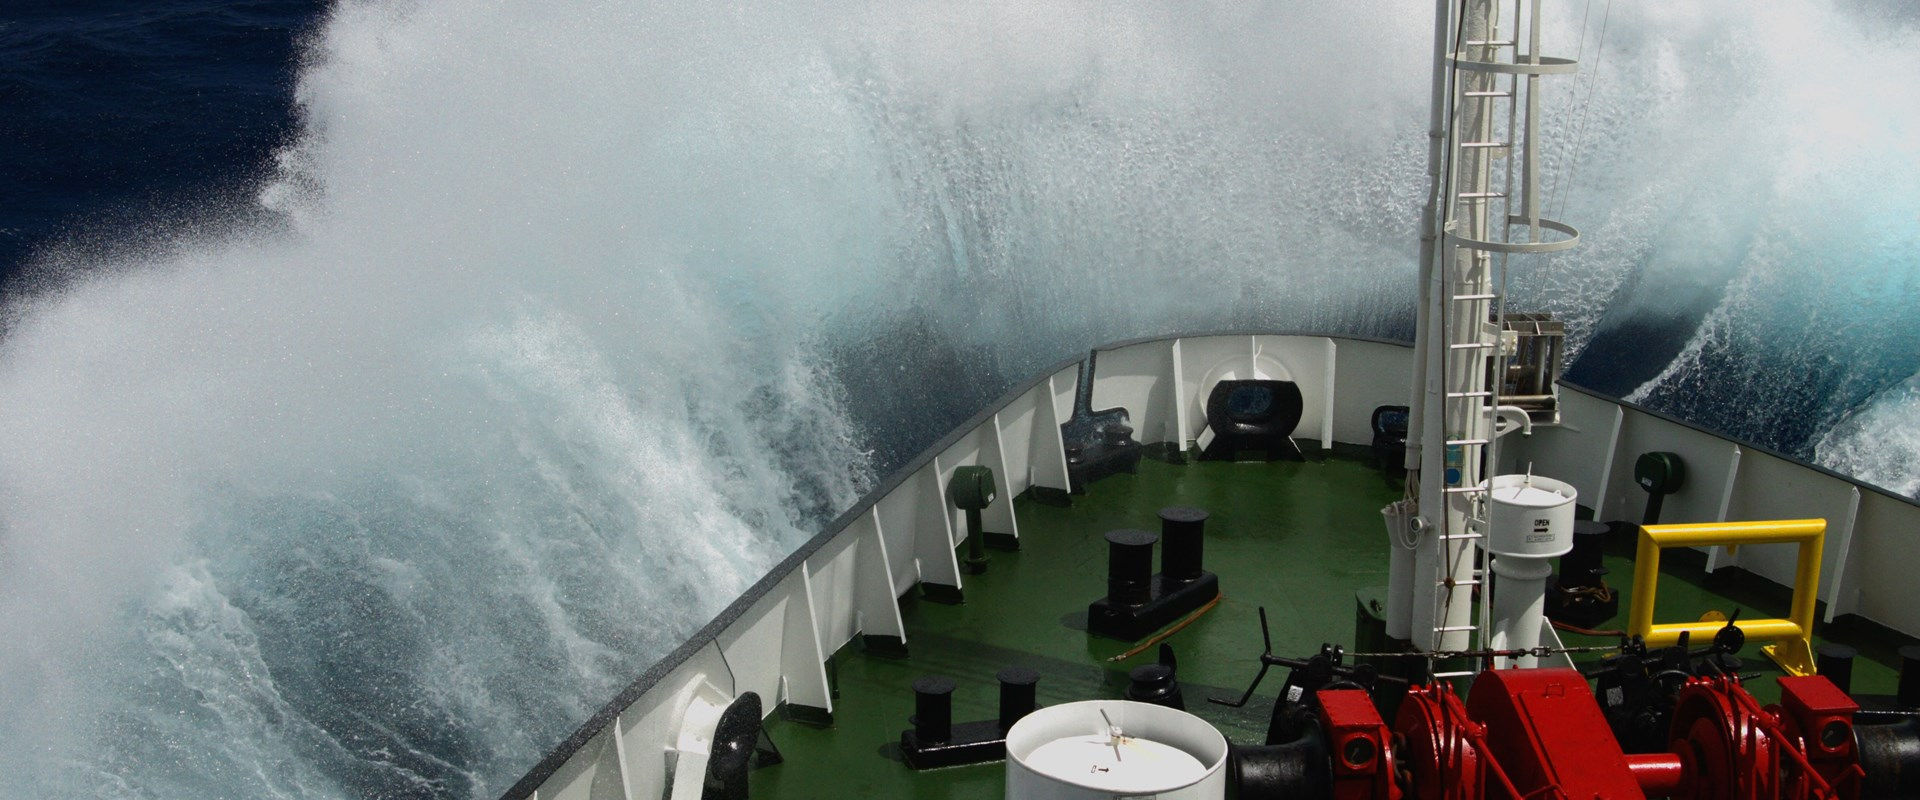 Big wave rolling over the snout of the ship - Image